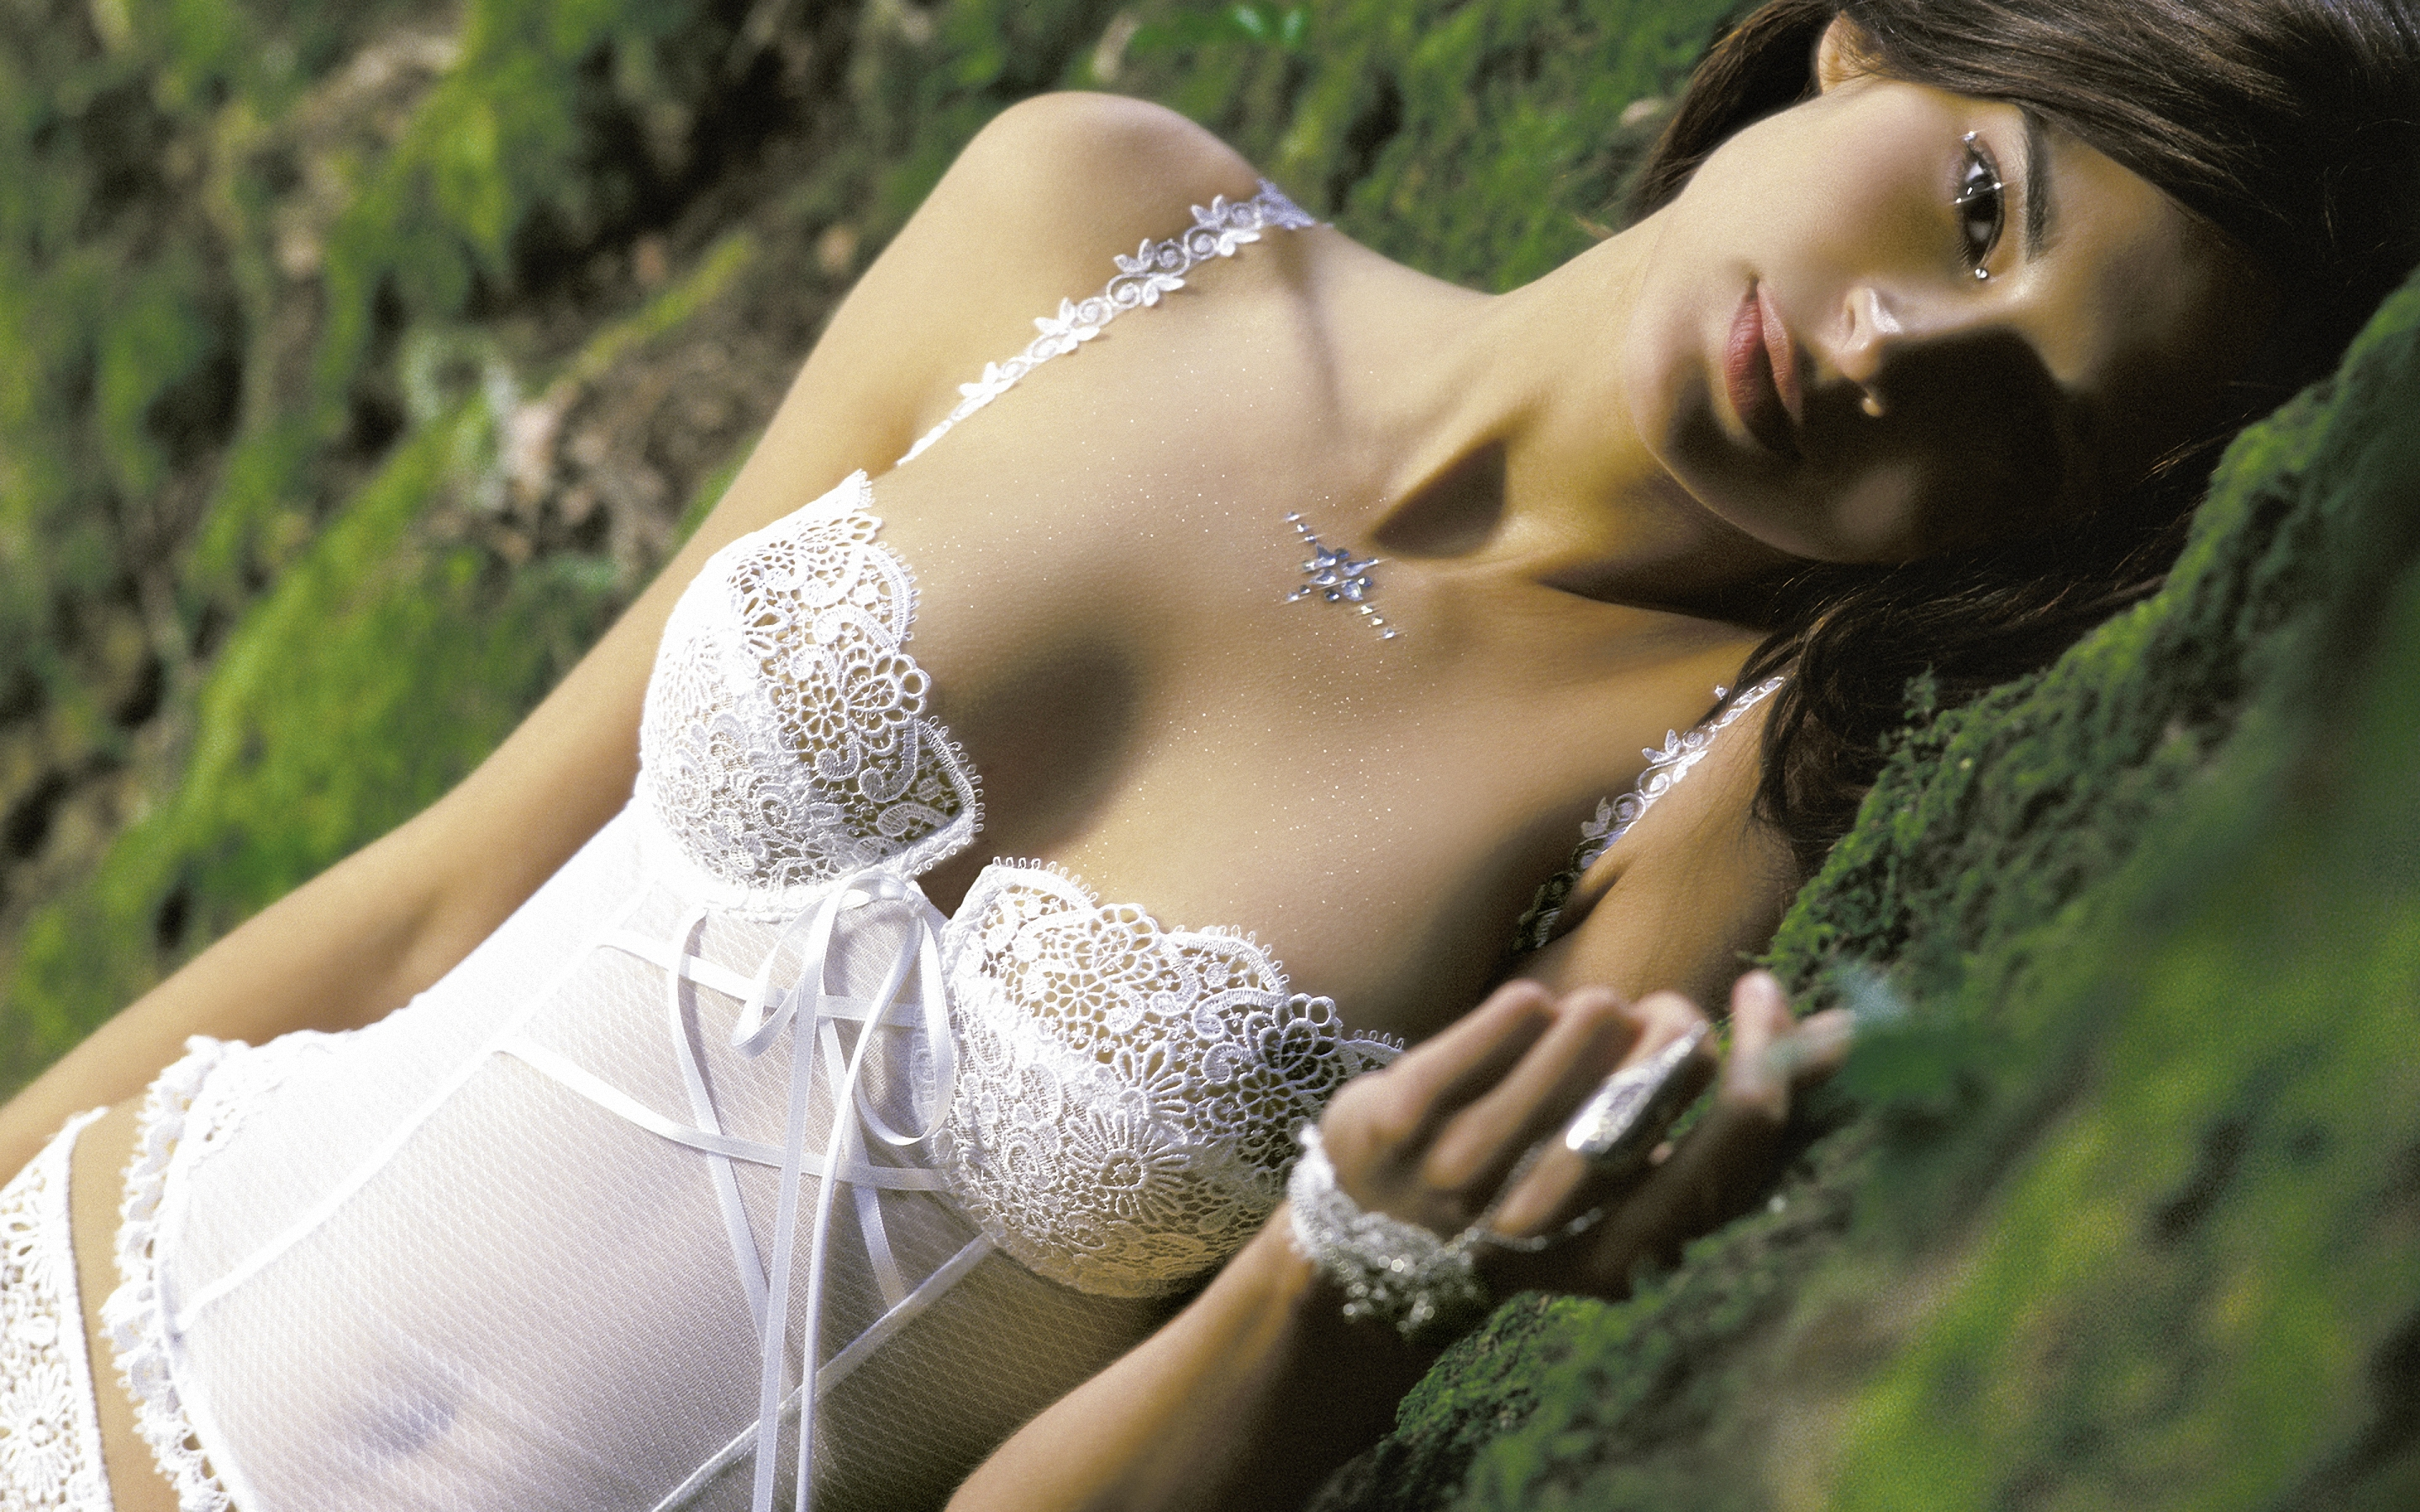 1345741672-4466812-girls-and-lingerie-32